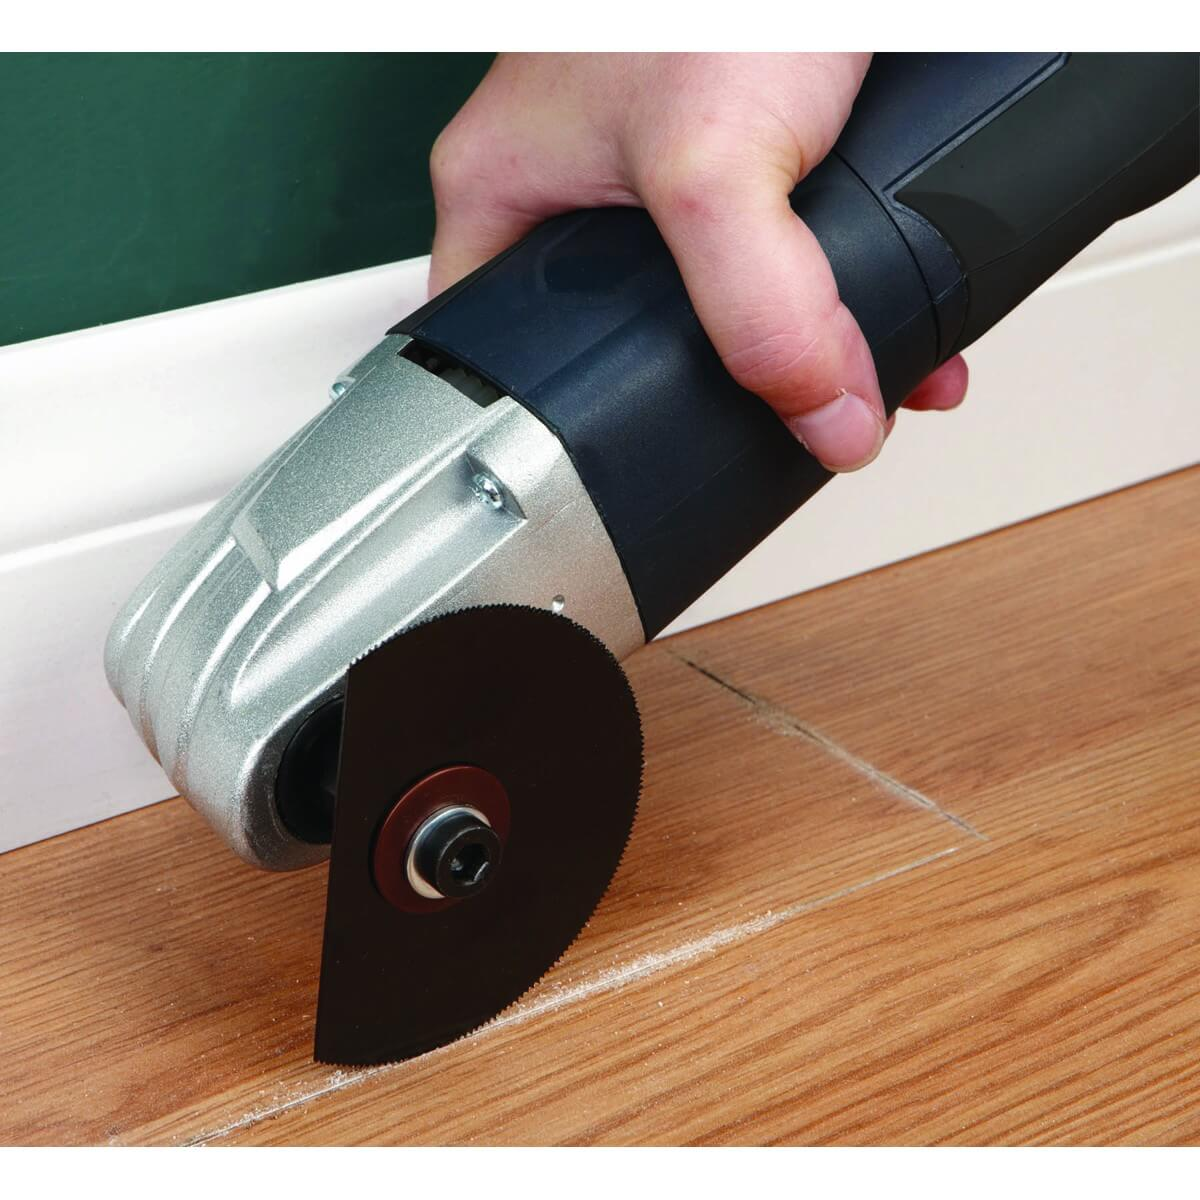 Tips for Using an Oscillating Tool